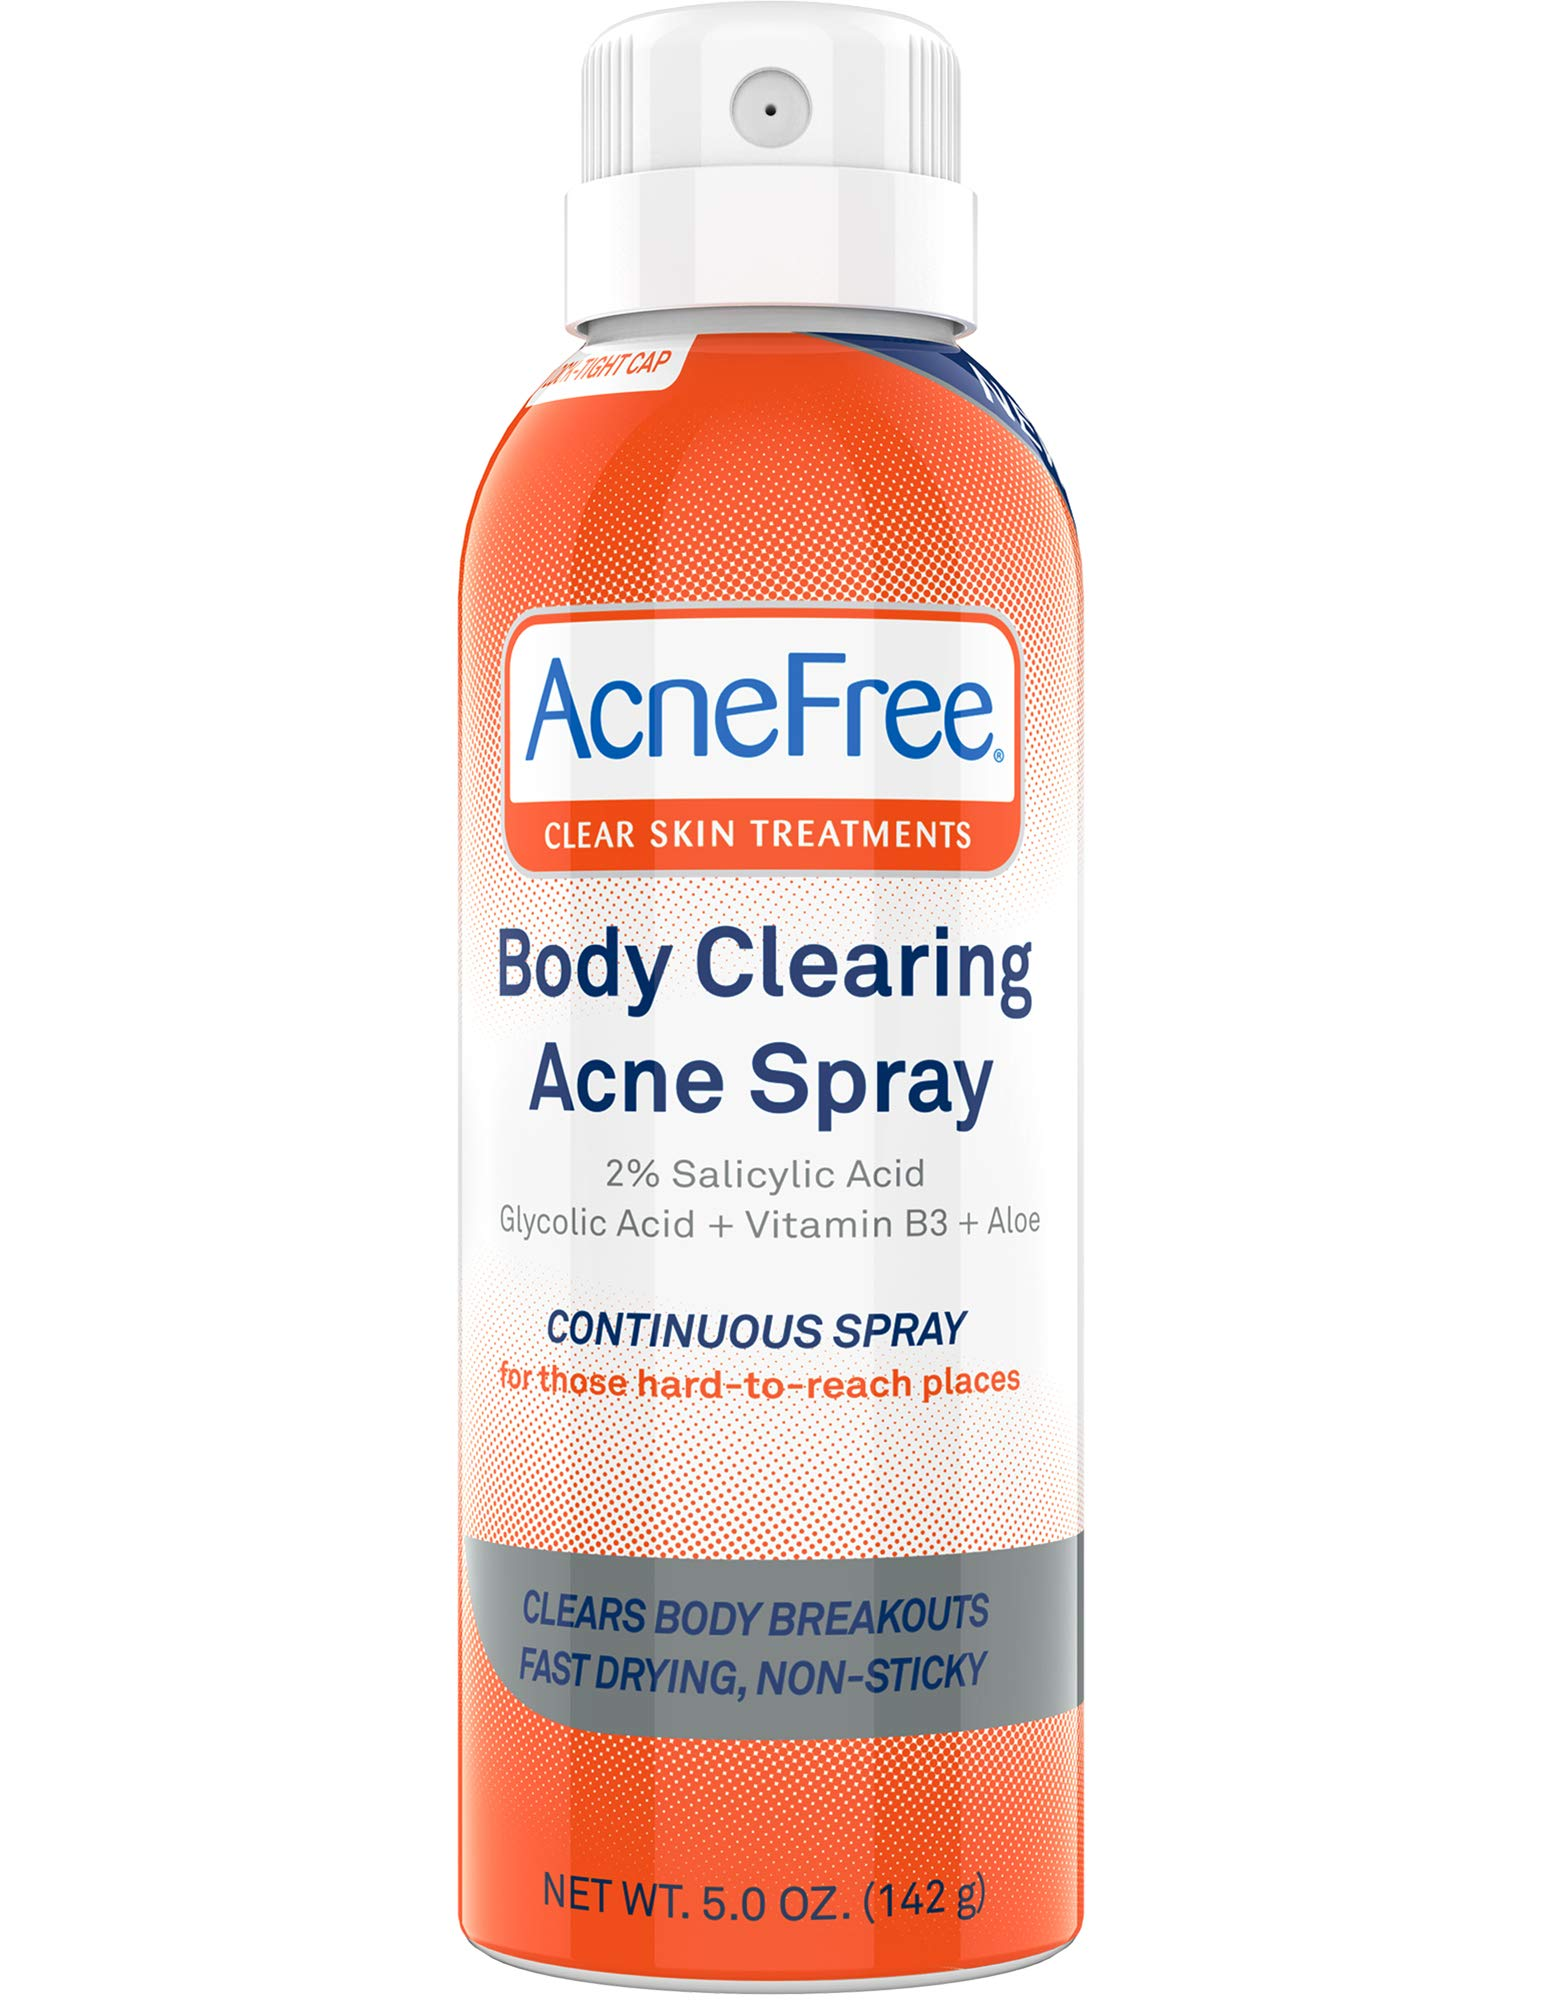 AcneFree Body Clearing Acne Treatment Spray for Body Acne and Back Acne, Treatment with Salicylic Acid 2% and Glycolic Acid, 5 Ounce